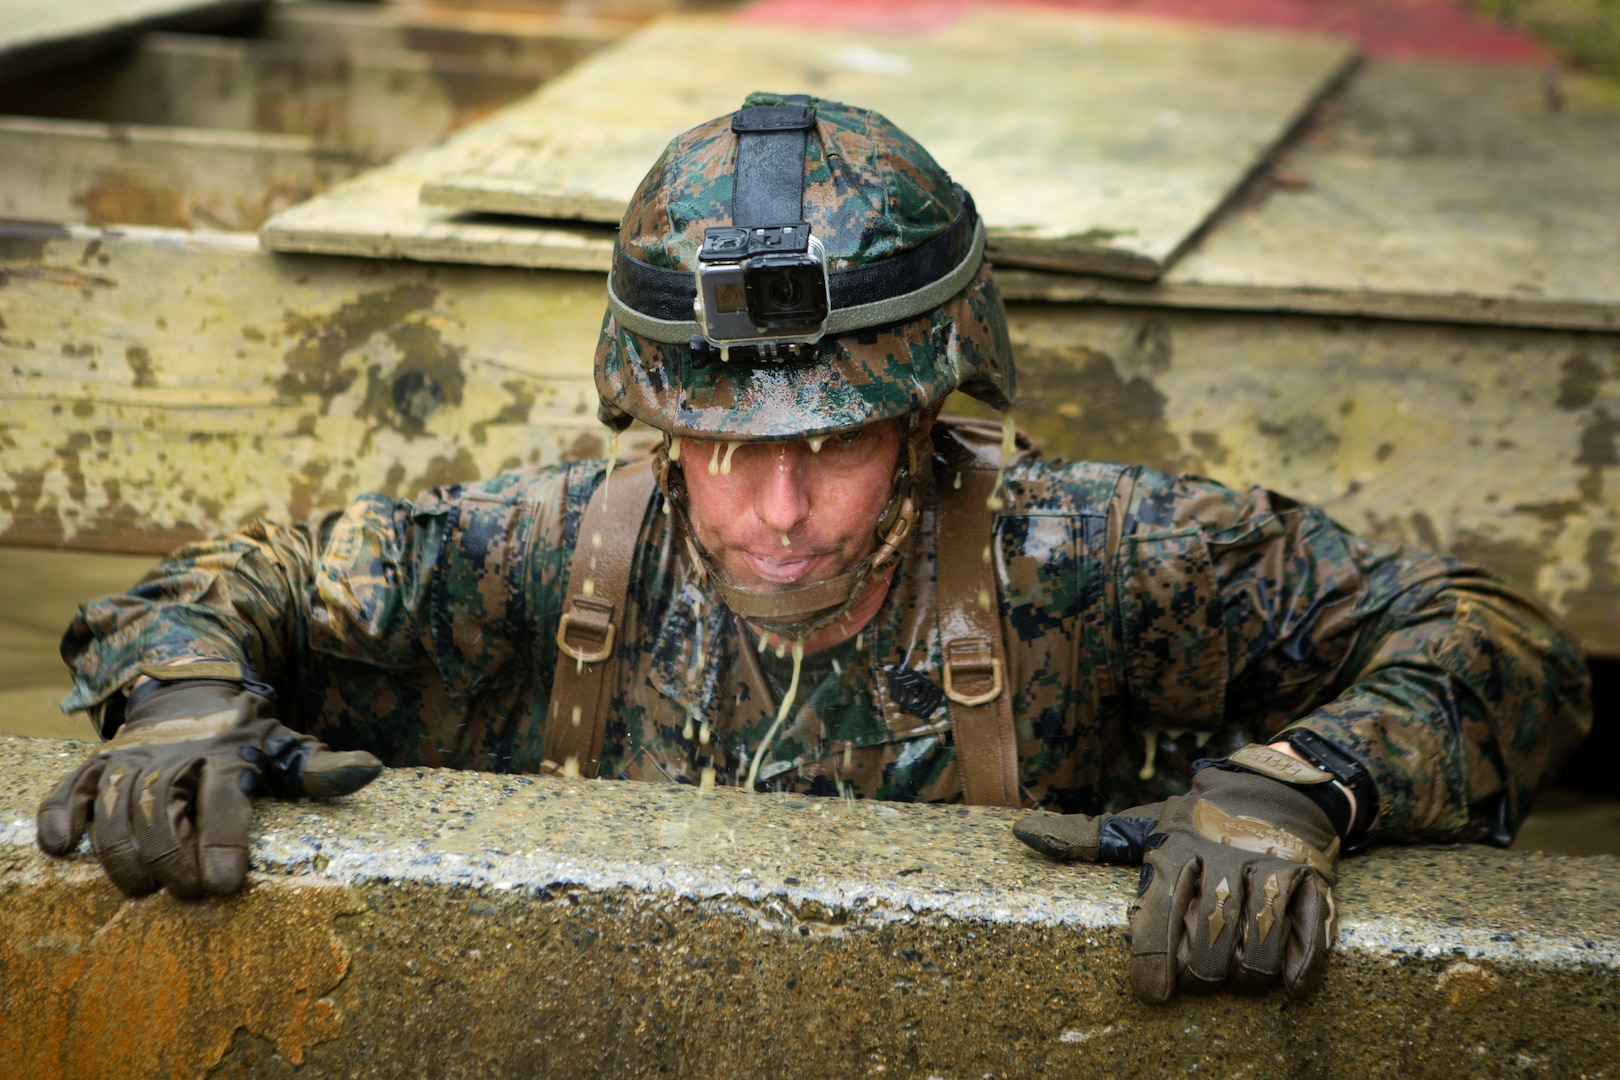 Marine Corps 1st Sgt. Thomas W. Tabisz lifts himself out of a muddy, water-filled pit during the Endurance Course.